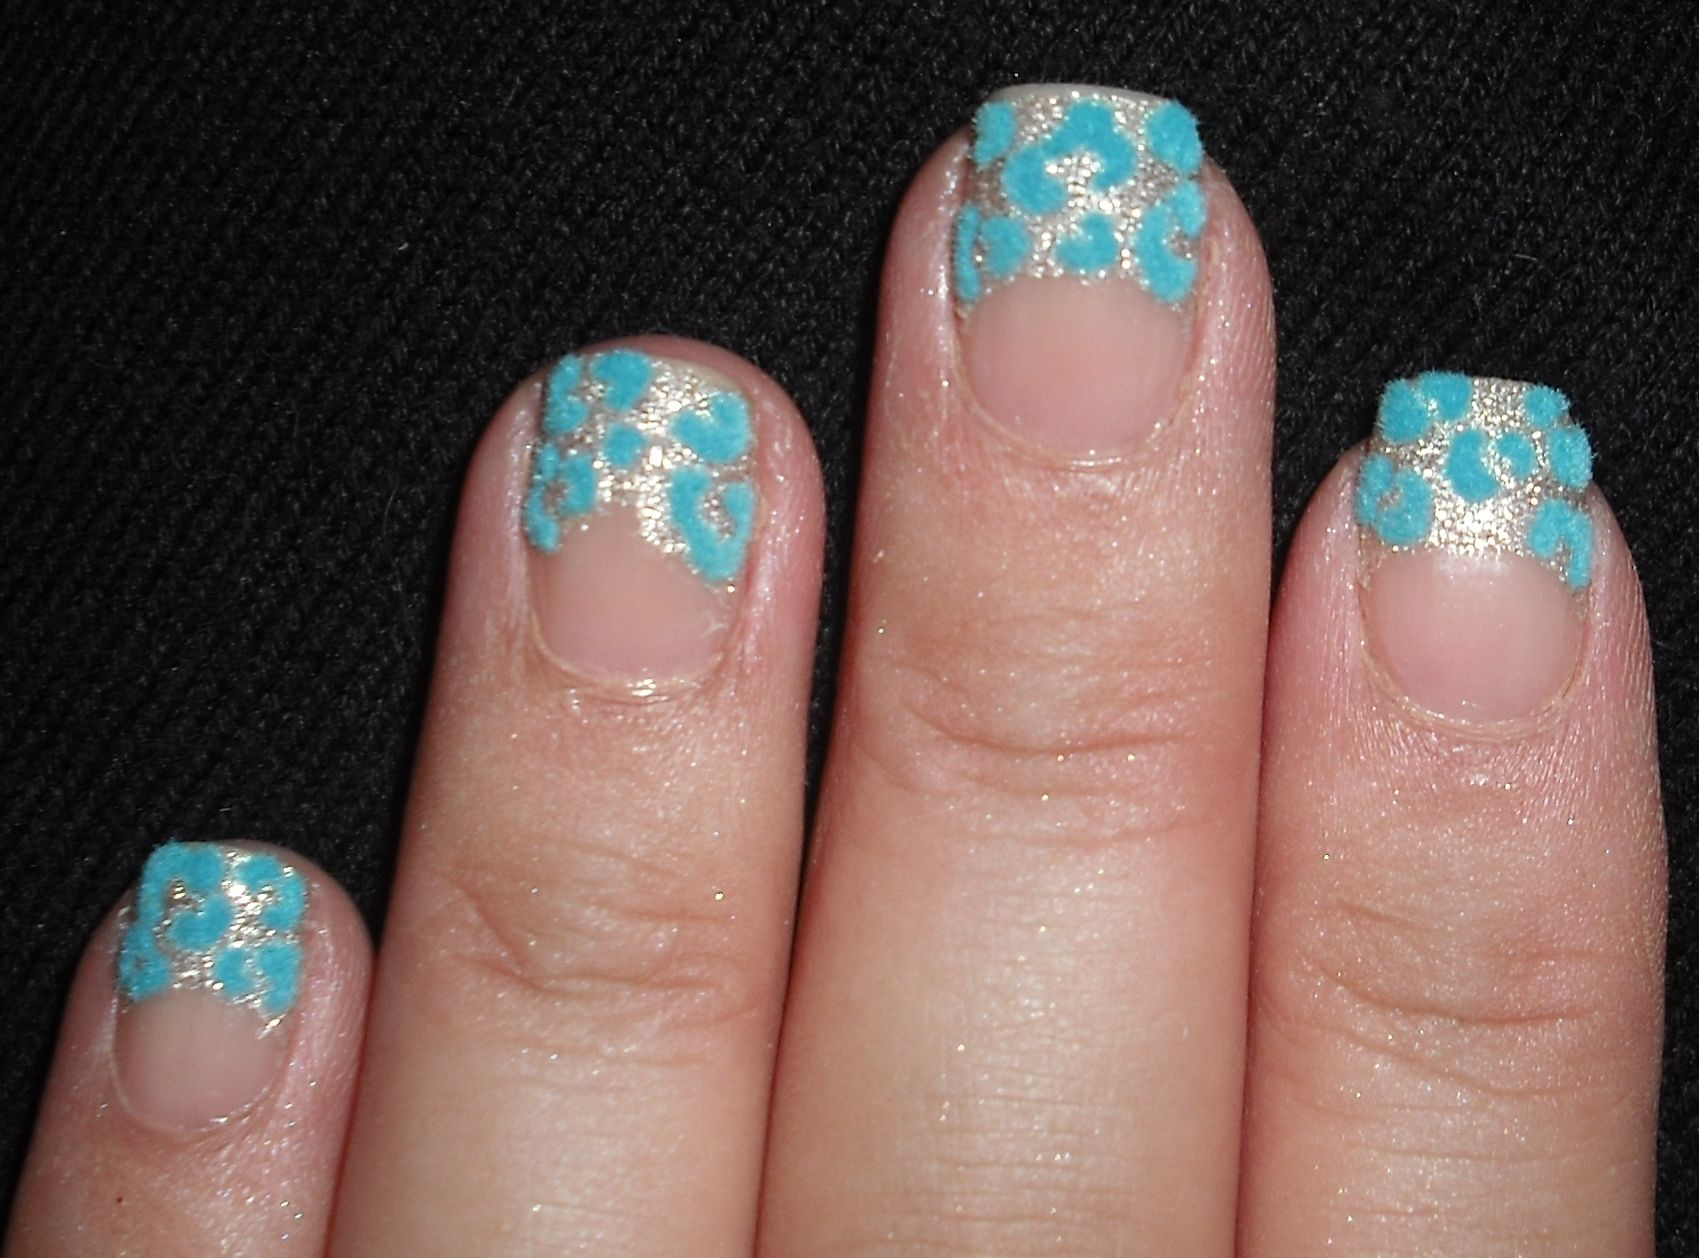 Furry Nails | fashion and beauty// | Pinterest | Furry nails and Make up